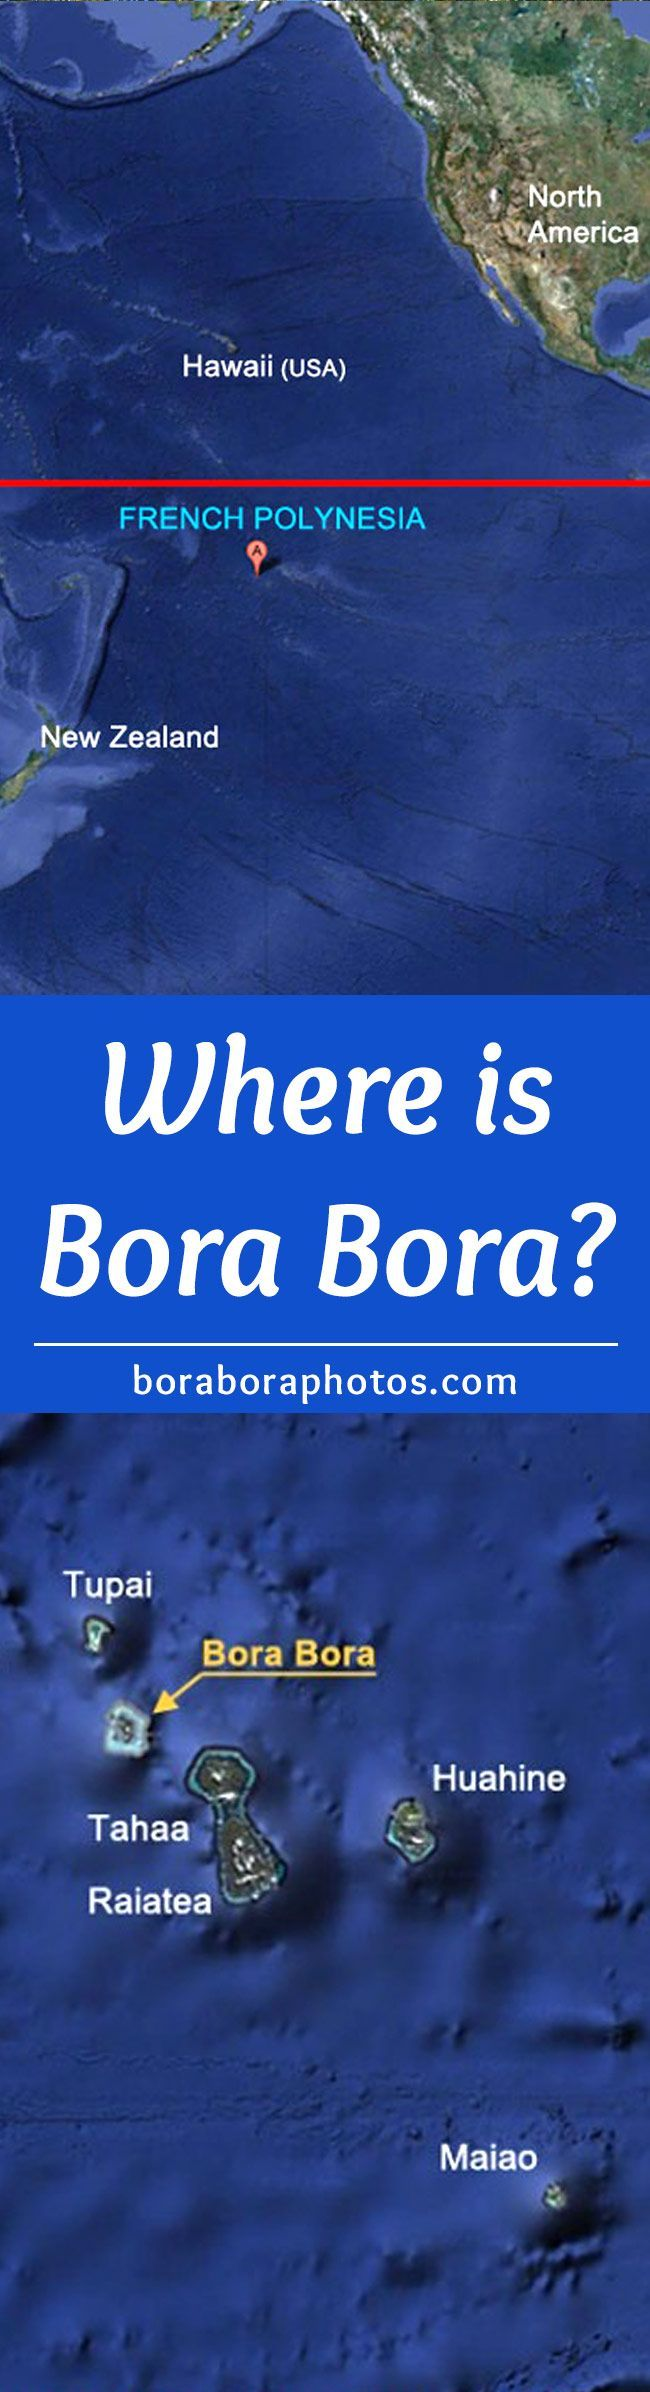 """Where is Bora Bora? - They call this island """"The Pearl Of The Pacific"""" and it's located in French Polynesia. It's also part of an island chain called the Society Islands. Bora Bora is located about 160 miles northwest of Tahiti and approximately 2,600 miles south of Hawaii. The island was discovered in 1722 by James Cook."""